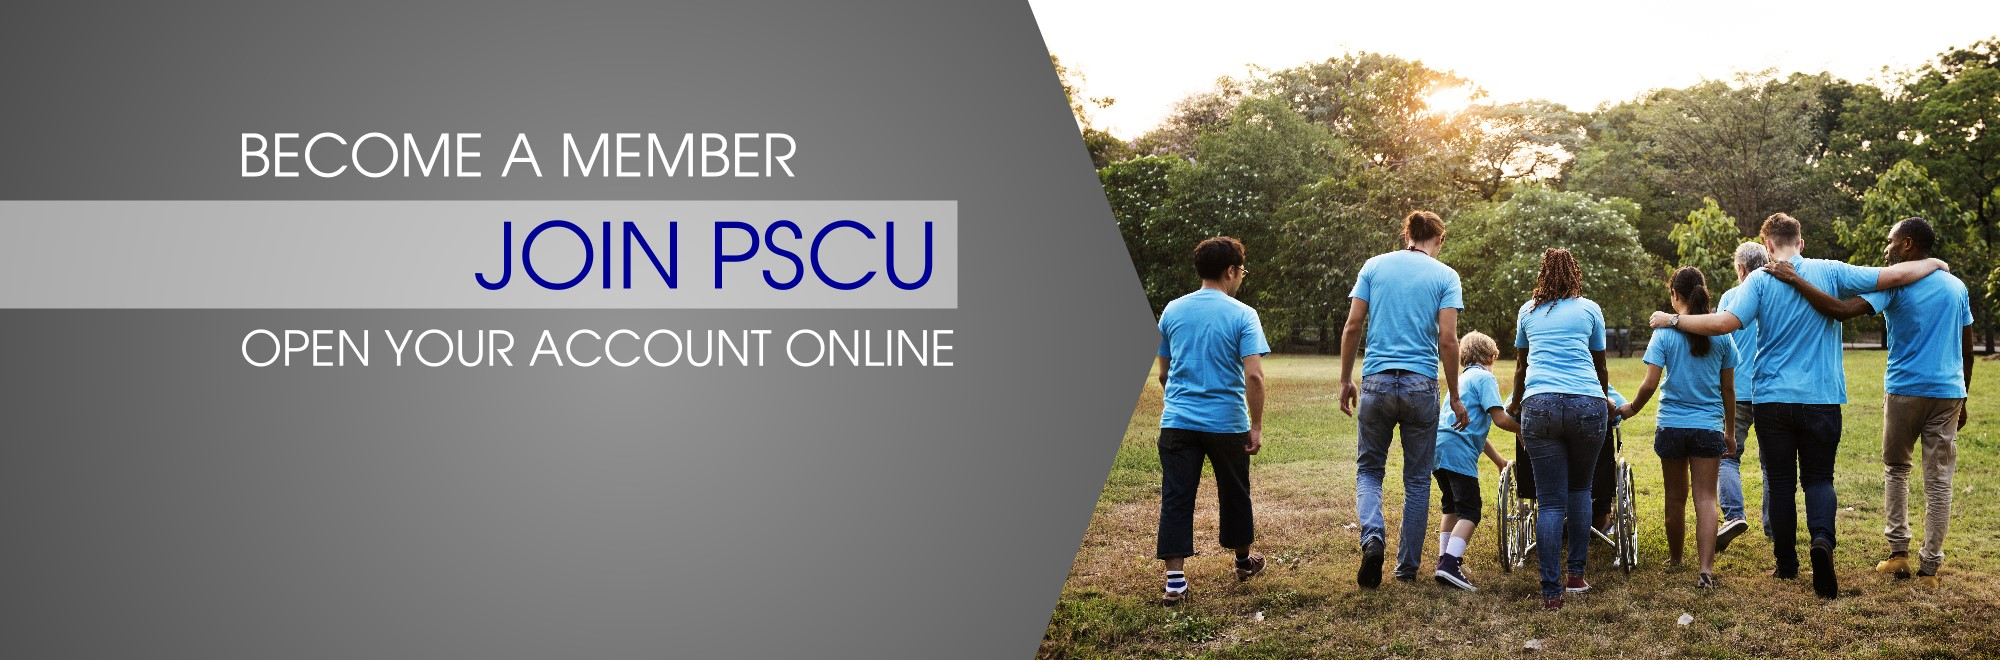 Become a Member.  Join PSCU. Open your account online.